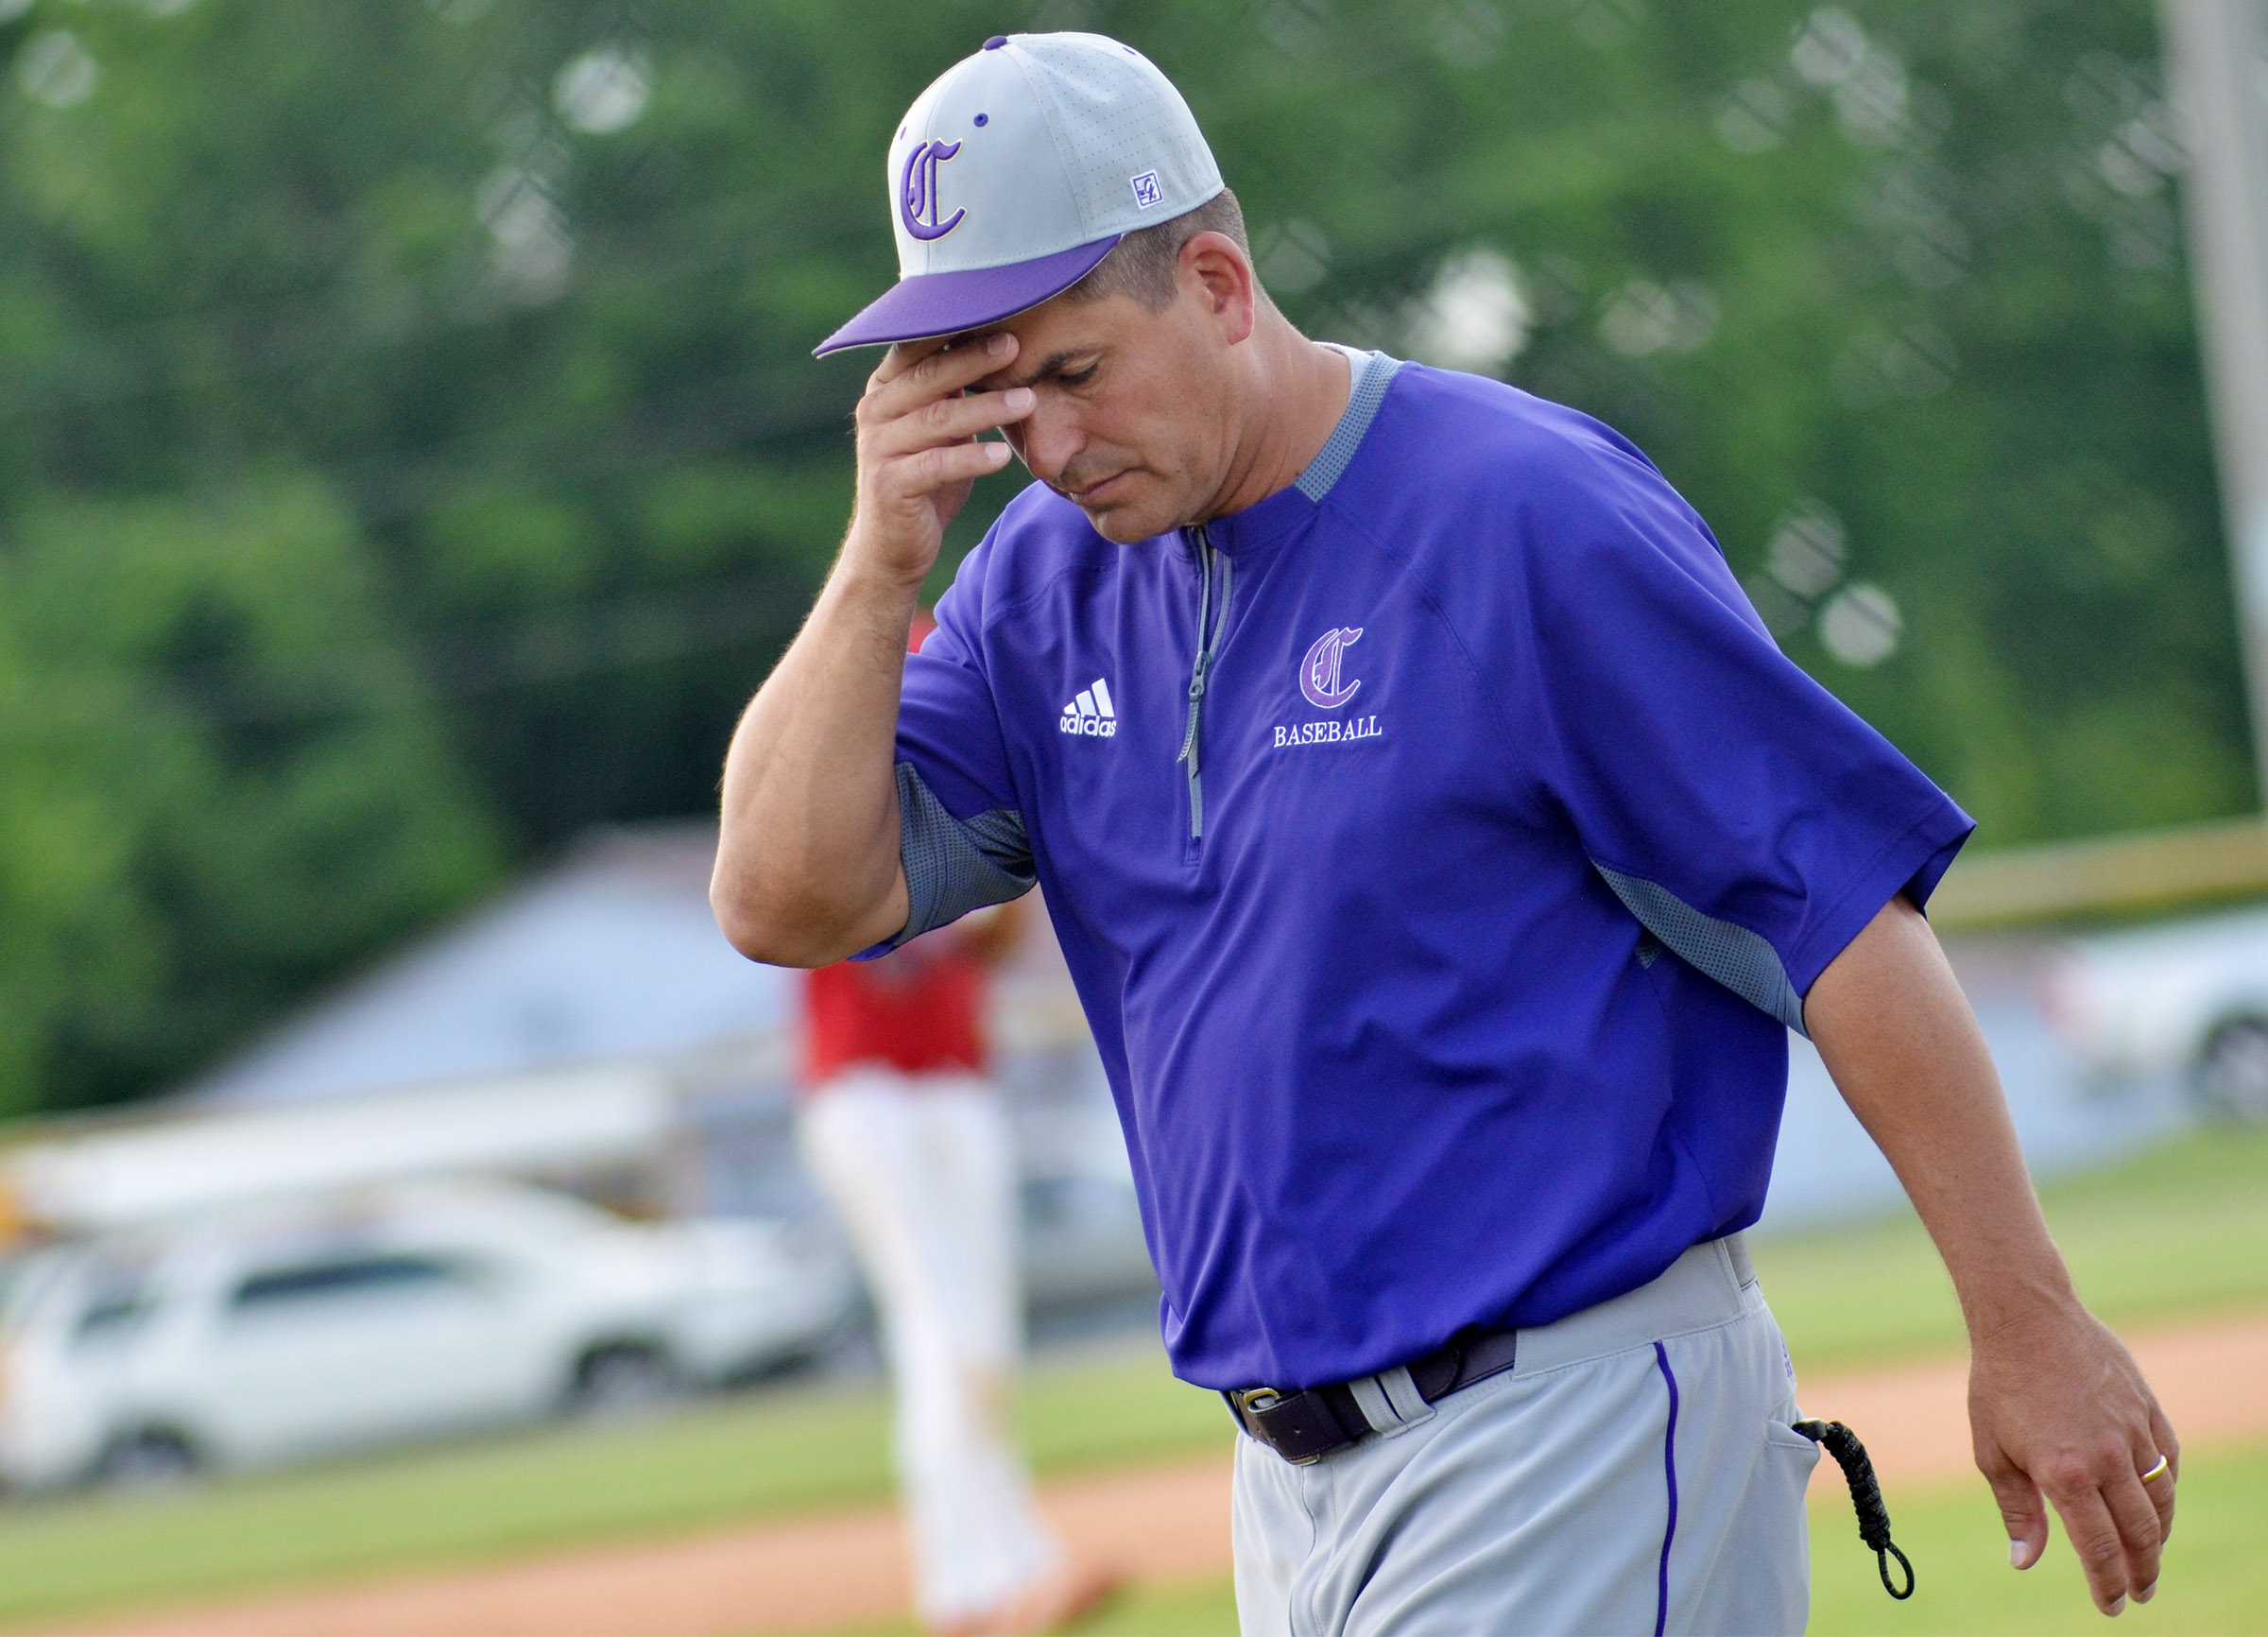 CHS head baseball coach Kirby Smith shows frustration as his team loses the lead.